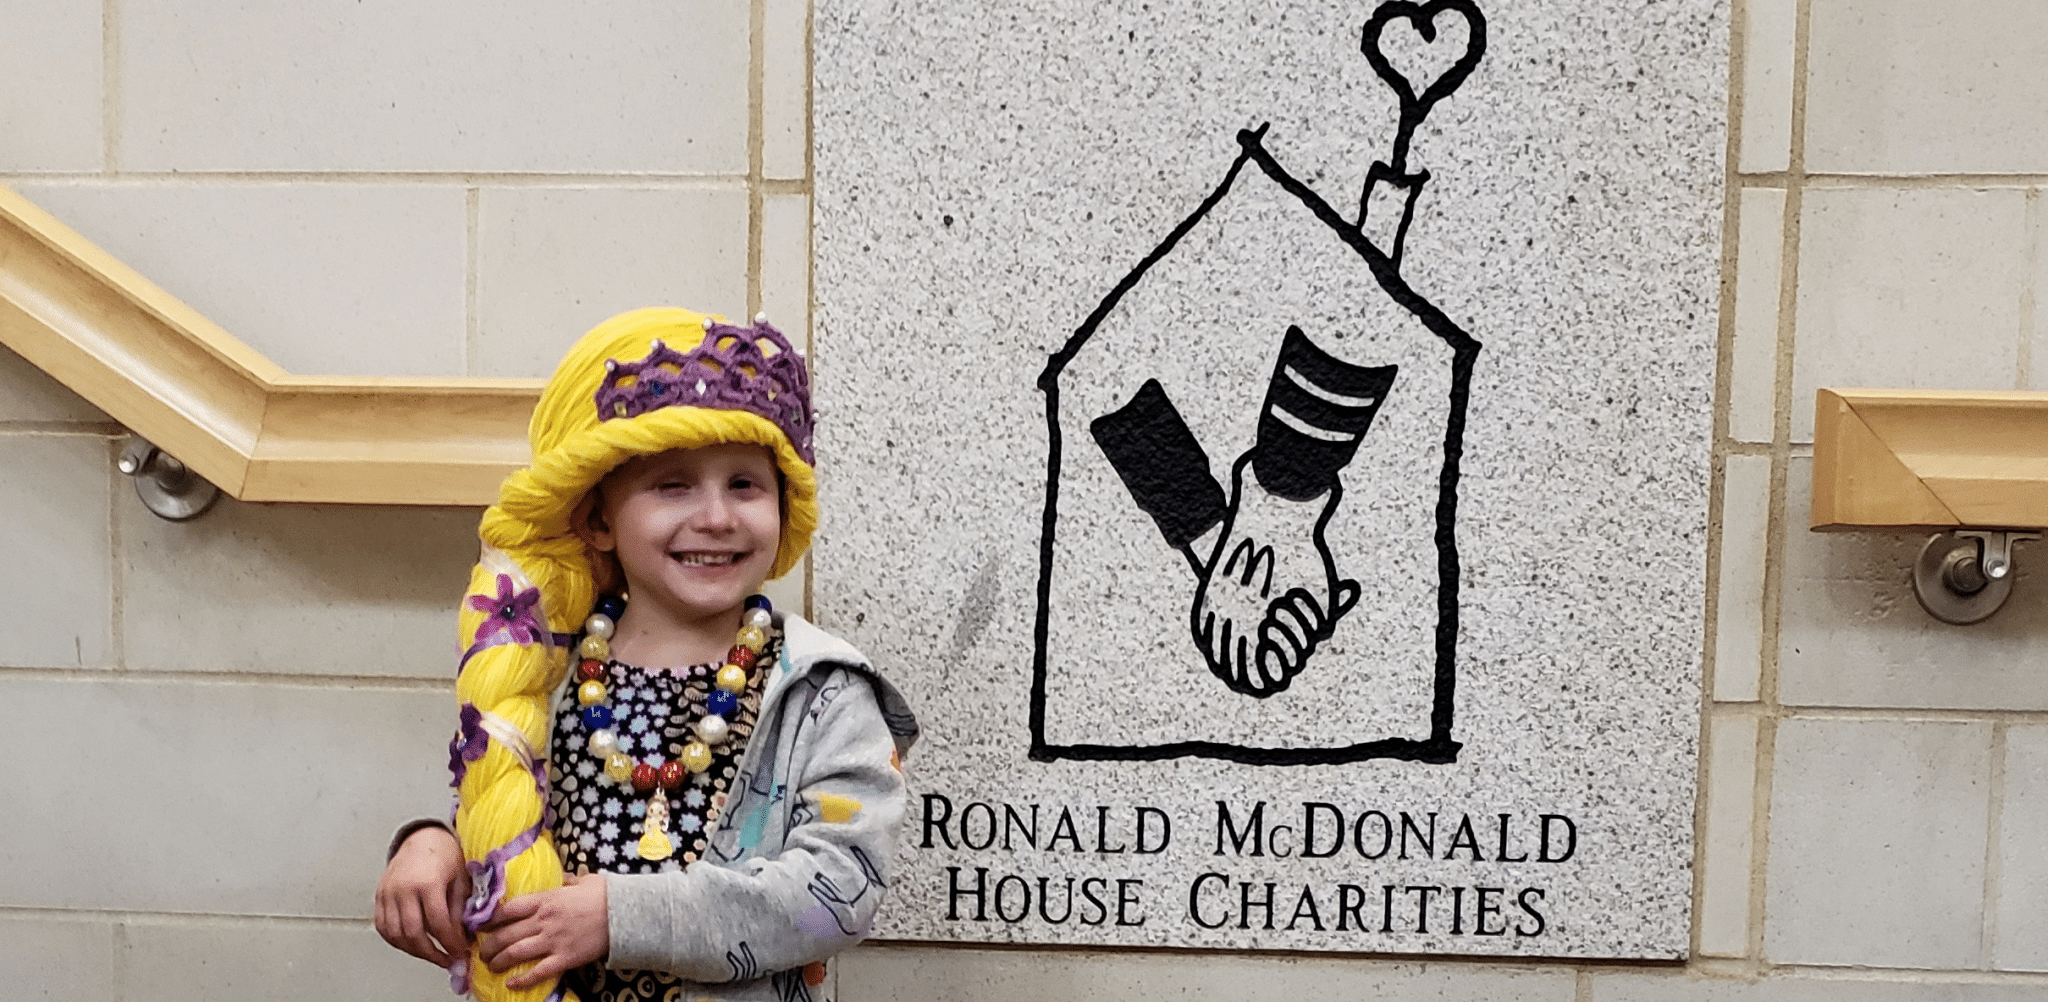 Young girl in yarn wig smiling by RMH logo on wall